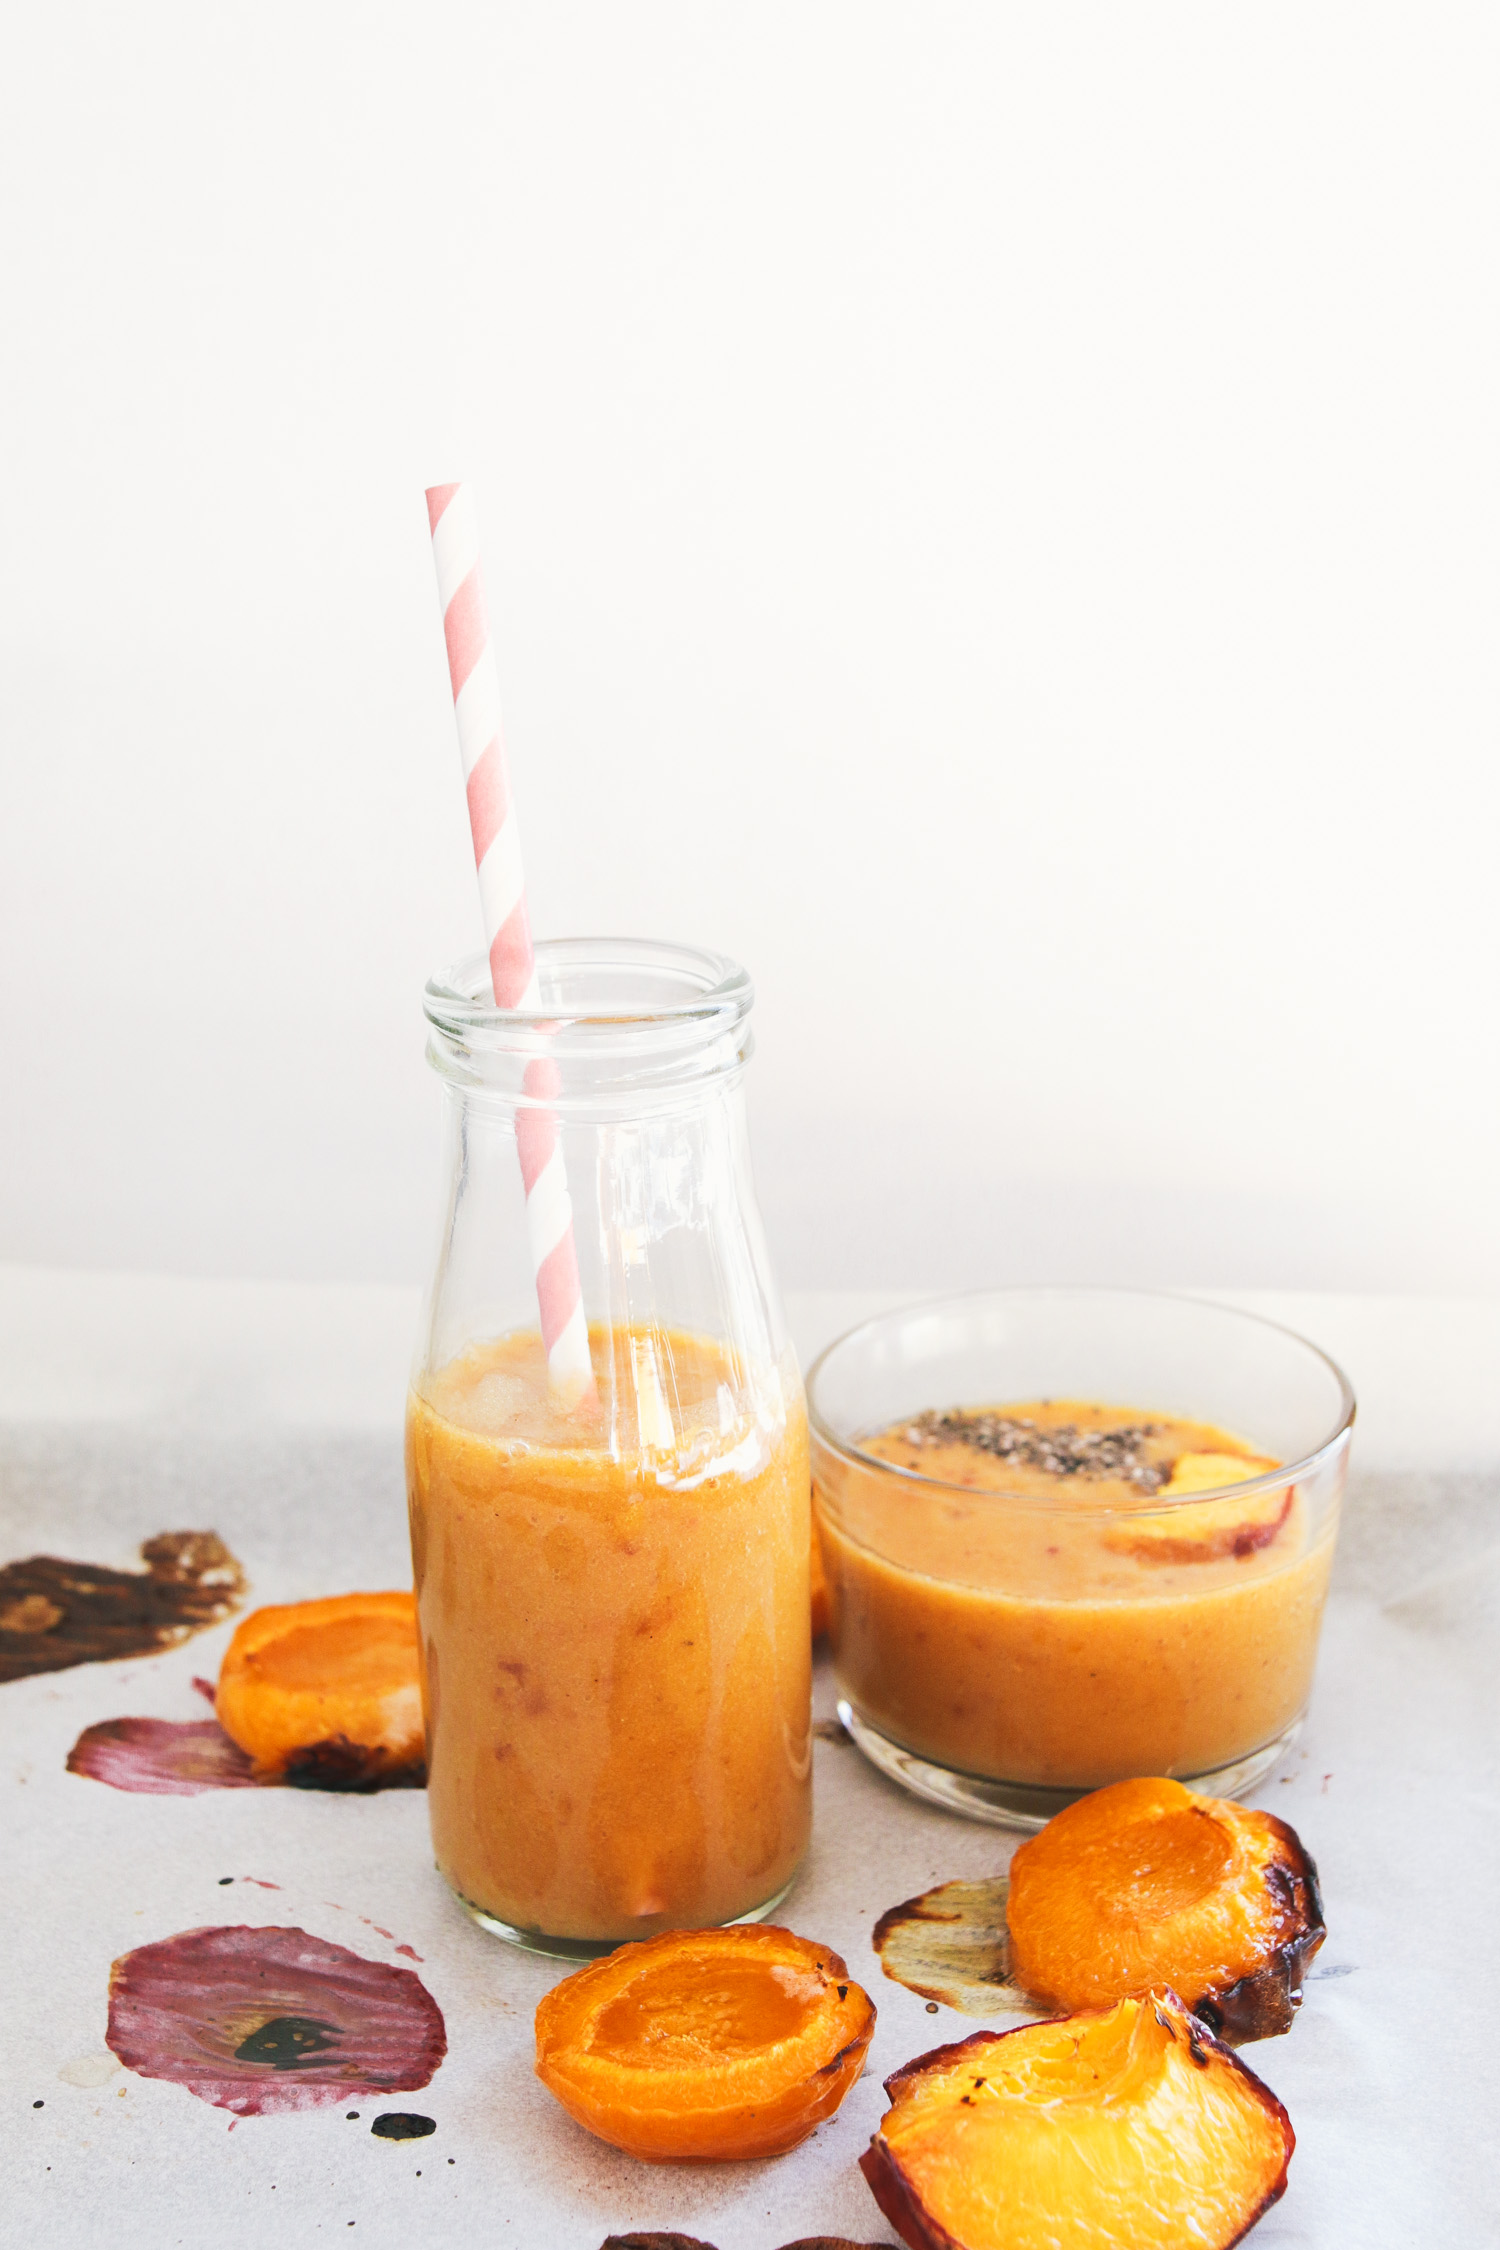 Roasted Peach Apricot Smoothie